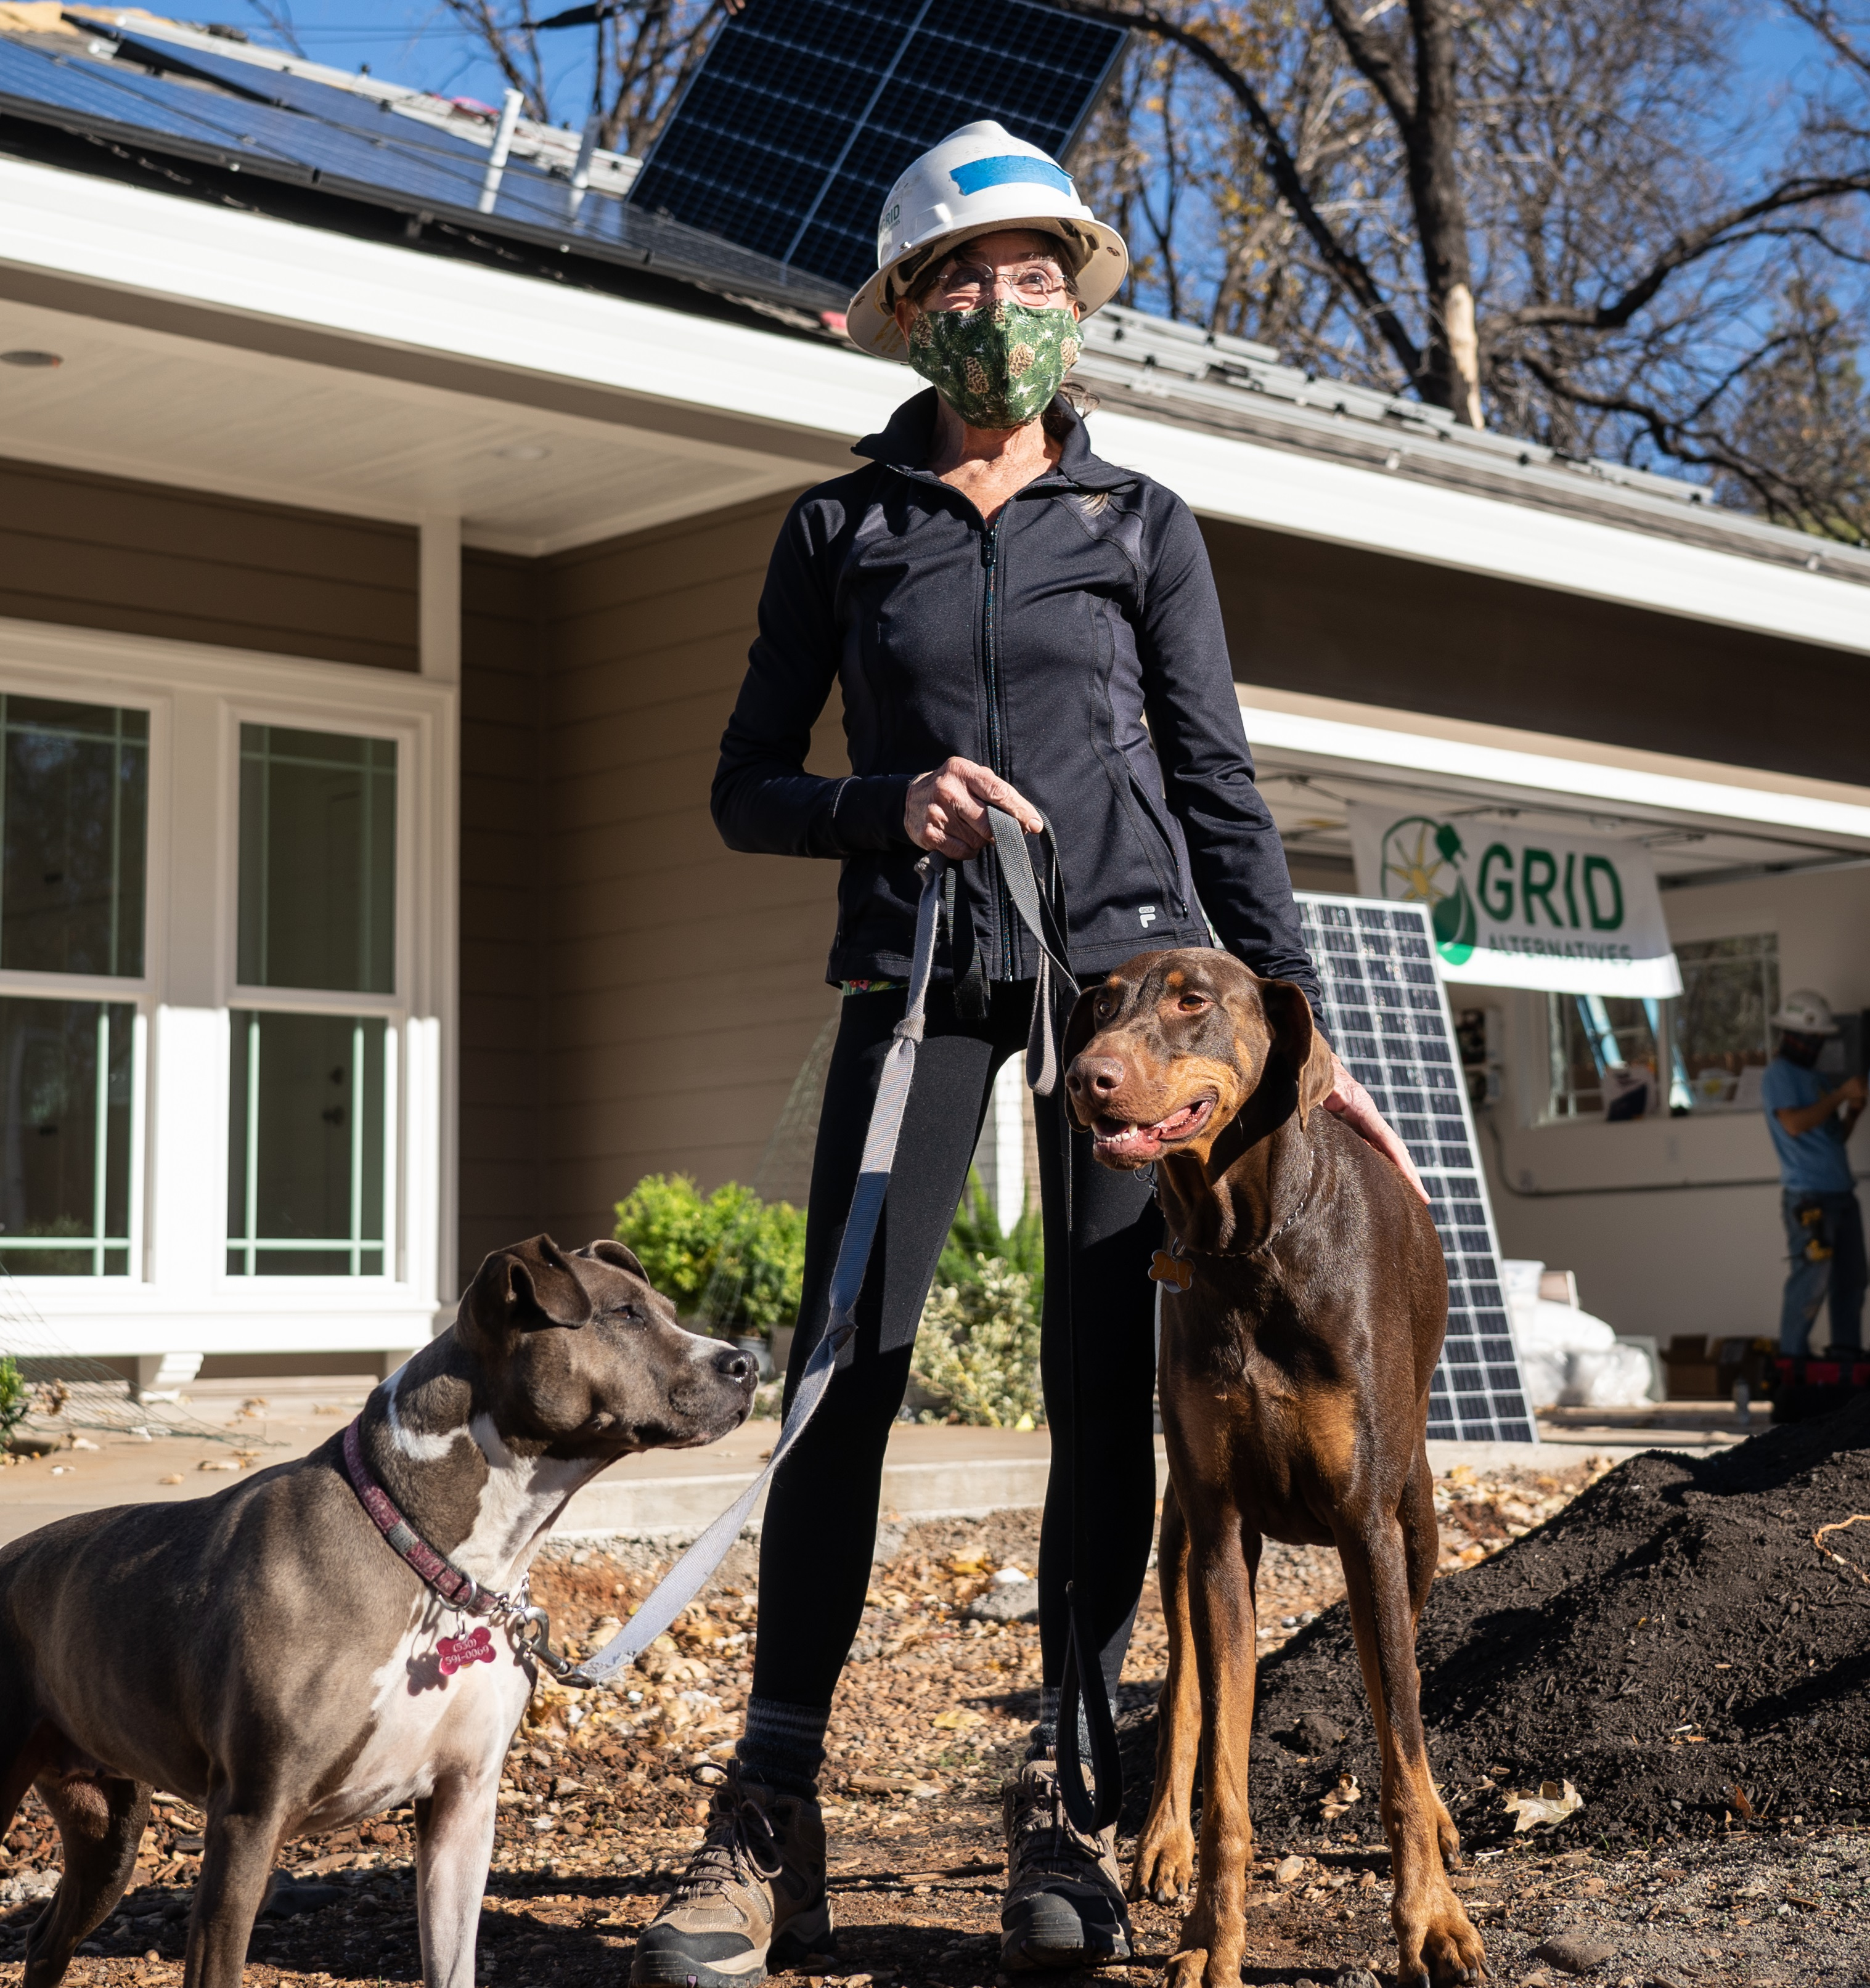 Lynn stands in front of her almost completed new Paradise home wearing PPE with 2 of her dogs. Behind her, solar panels and a GRID banner are visible.